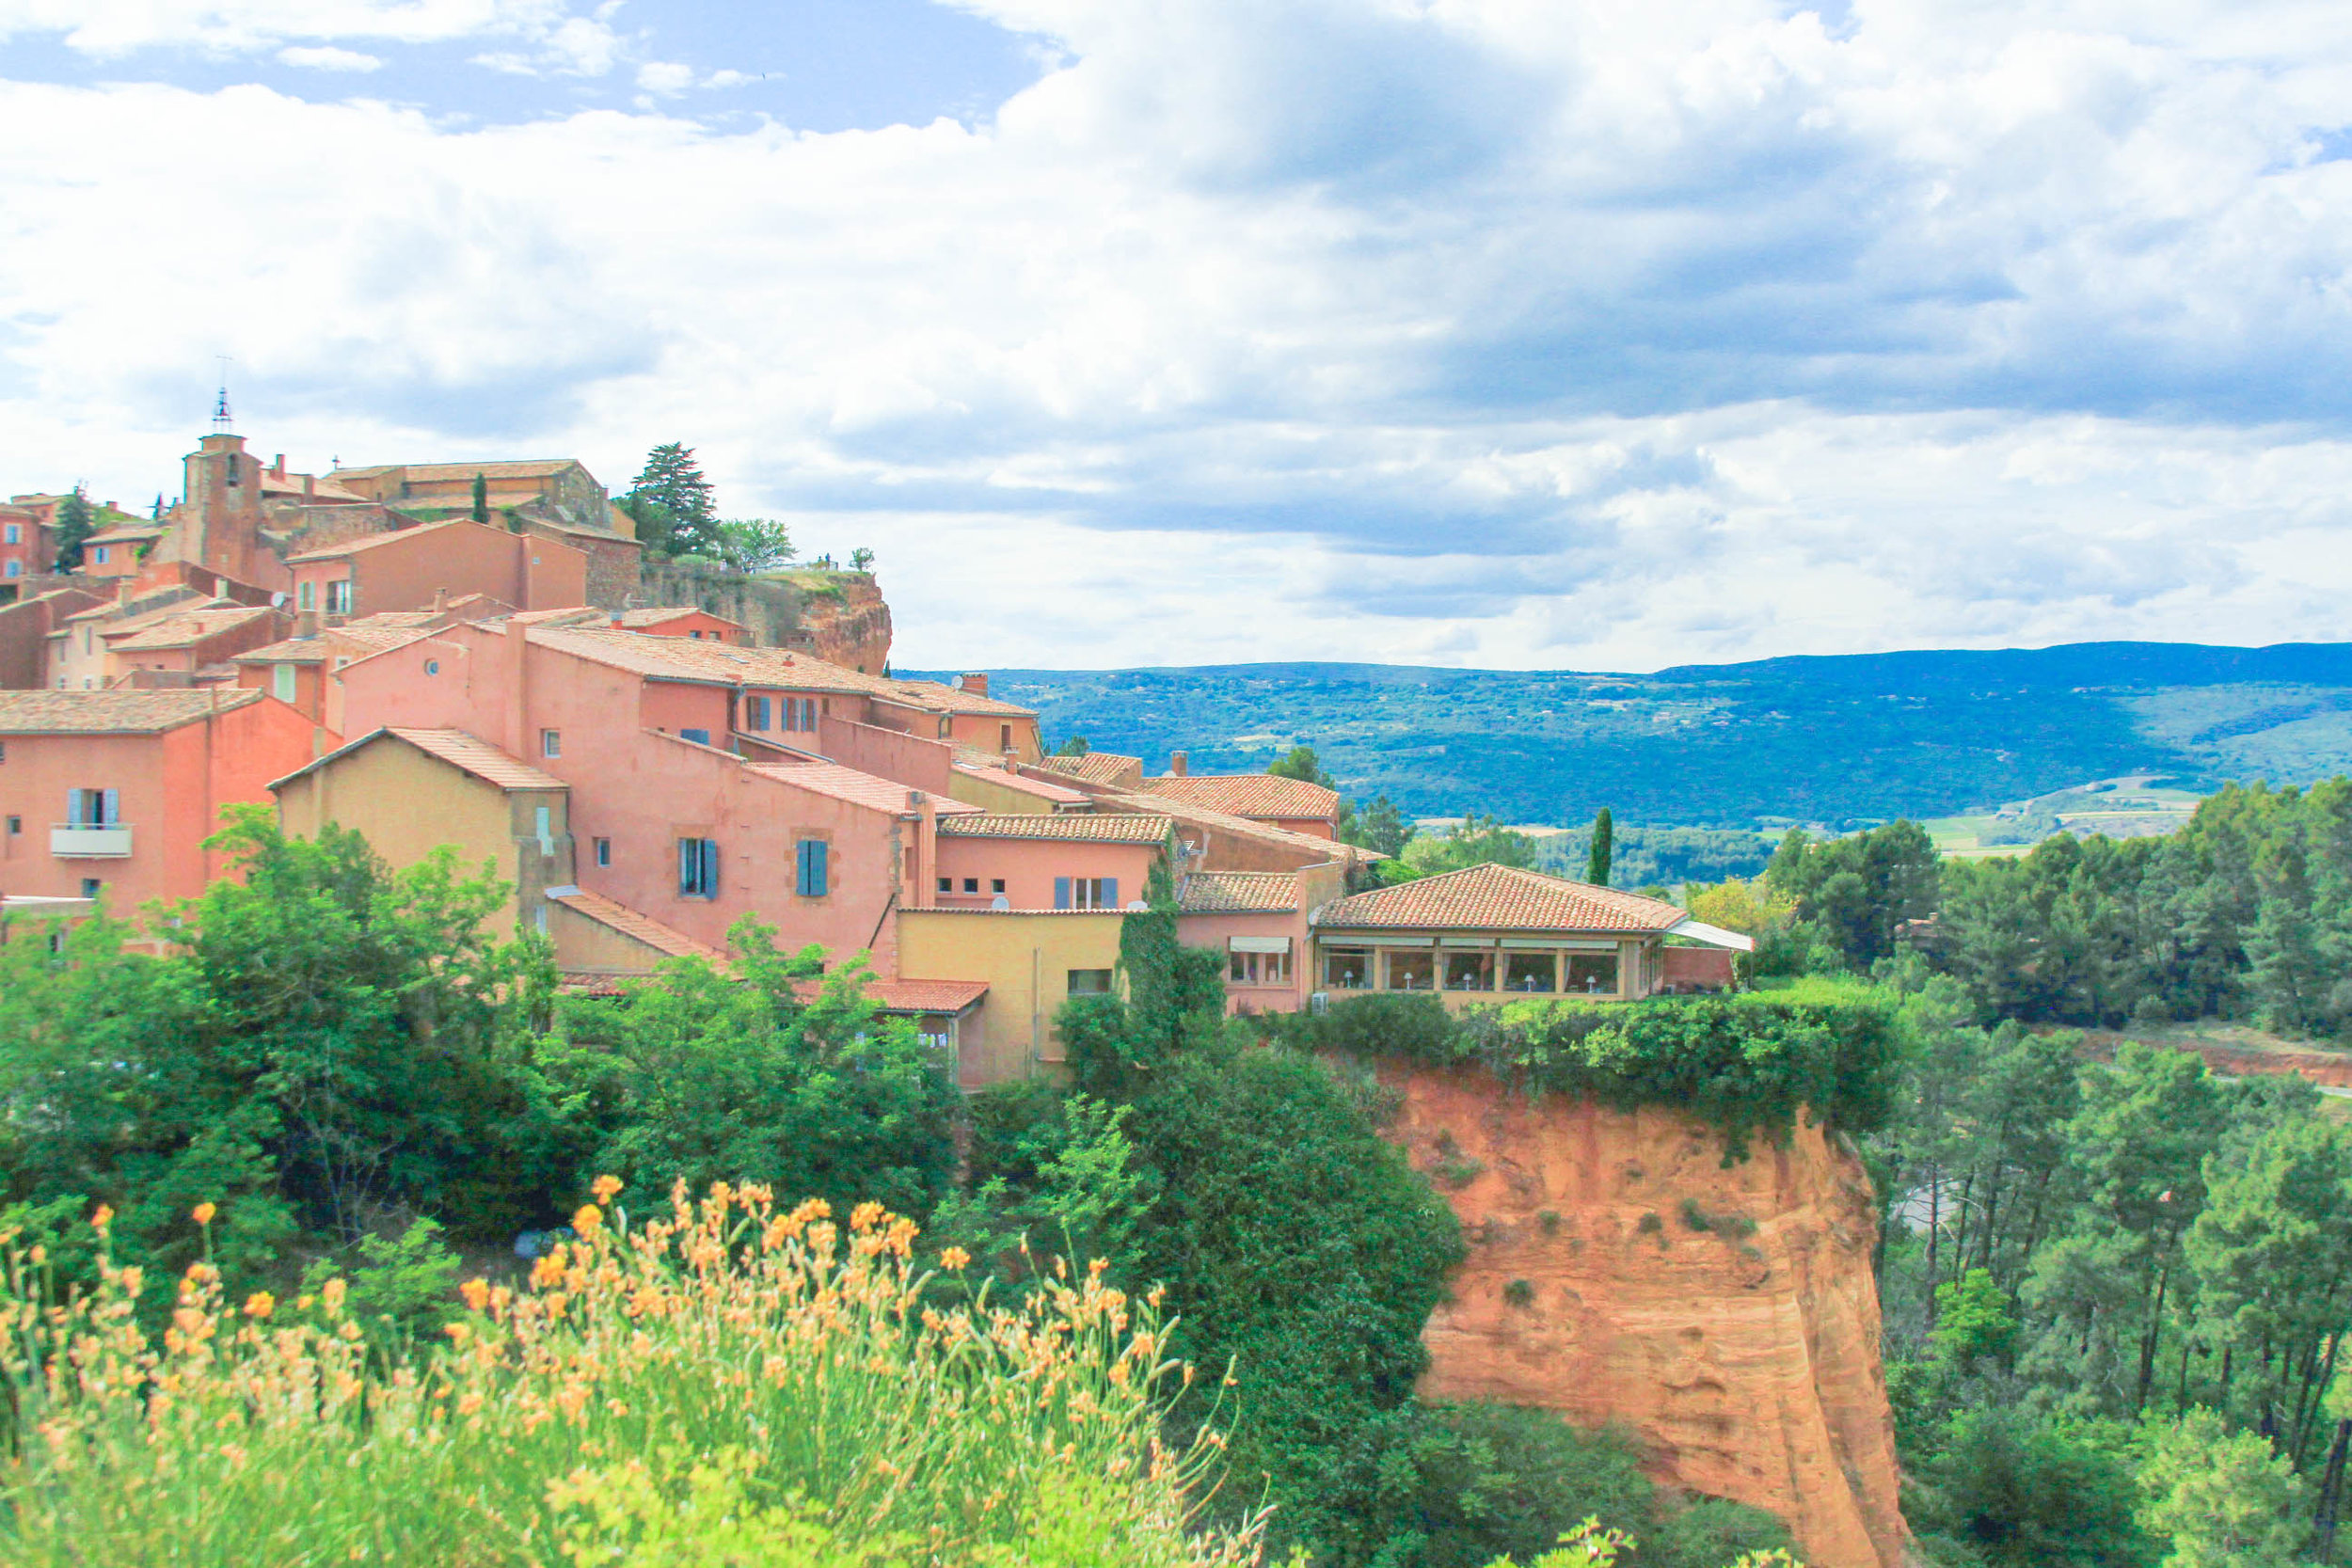 """Roussillon, France is built on top of a striking red-ochre cliff...."" 